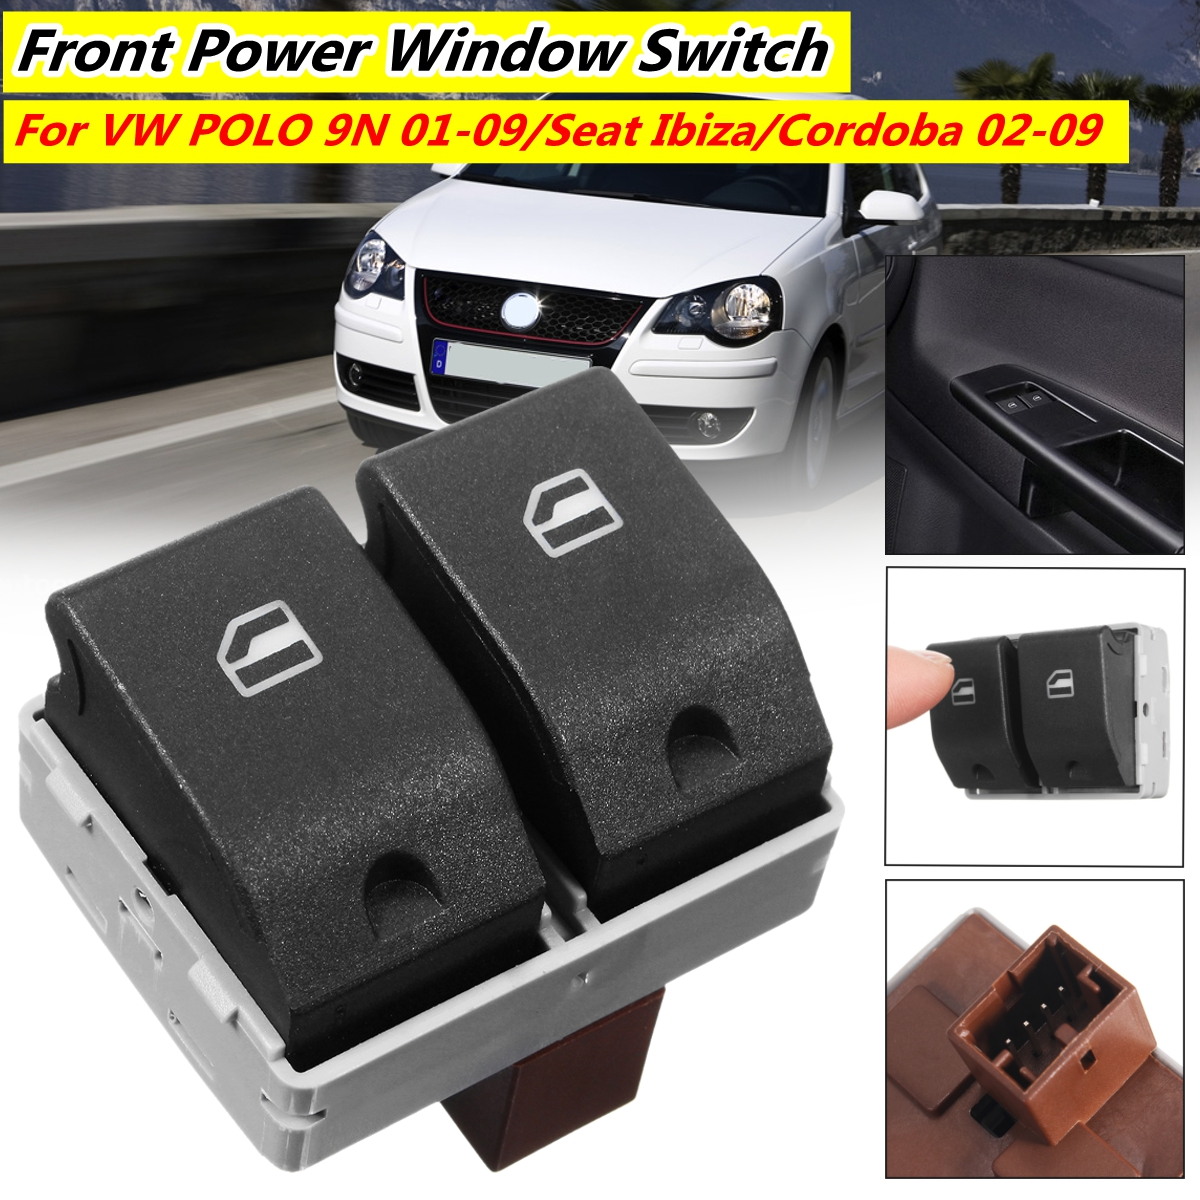 Electric Window Control Switch 4 Pin for VW Polo 2002-2009